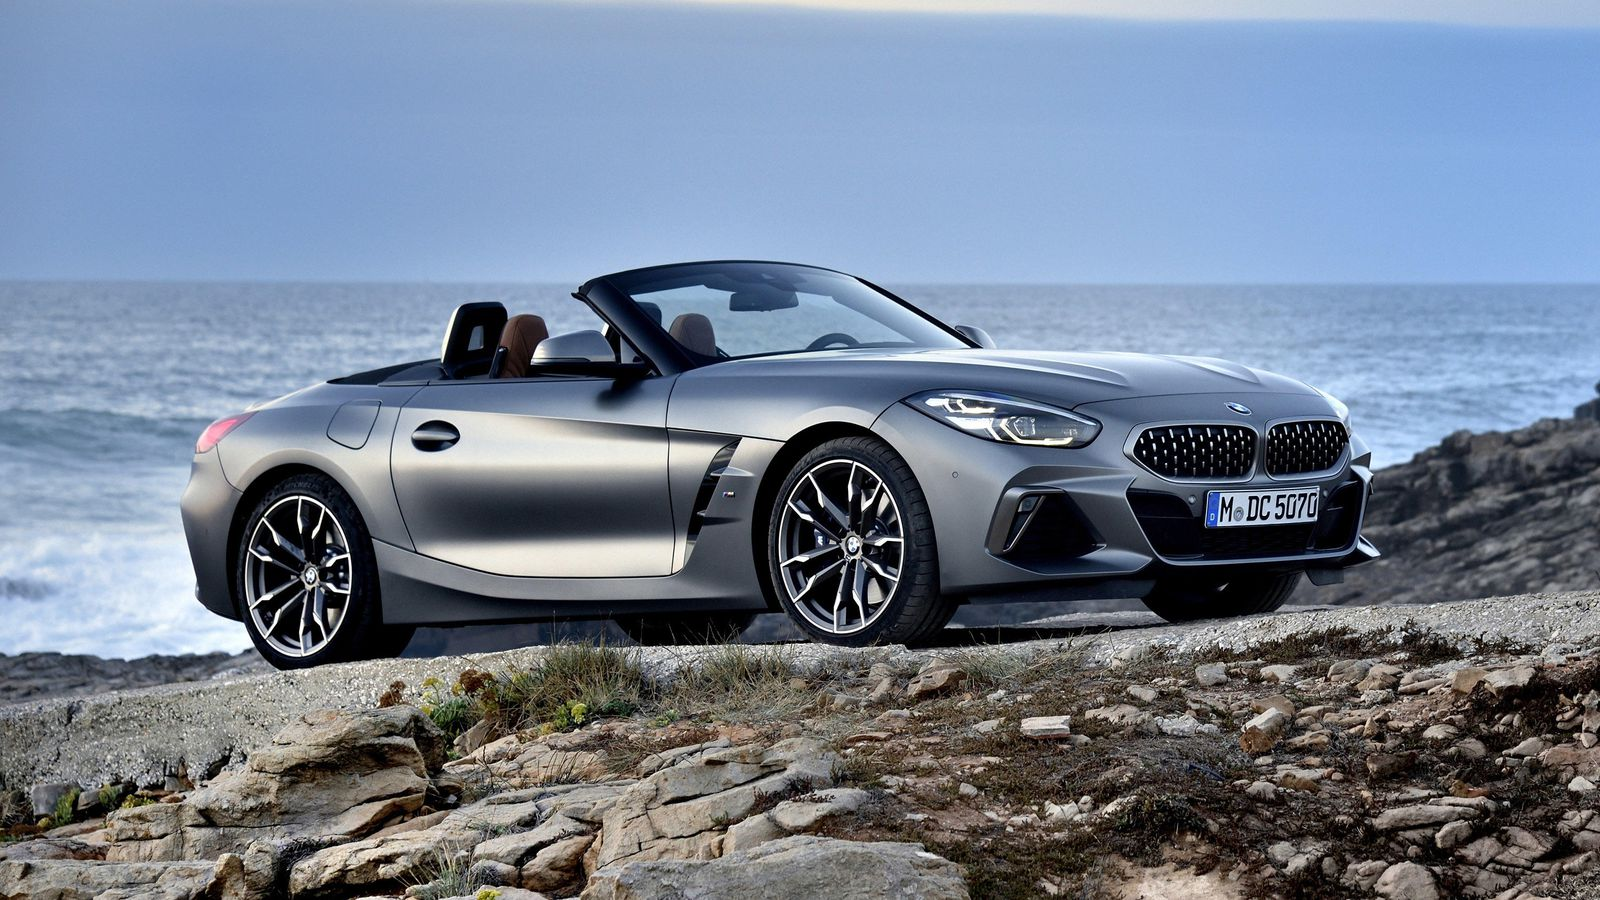 72 Best 2020 BMW Z4 M Roadster Price and Review